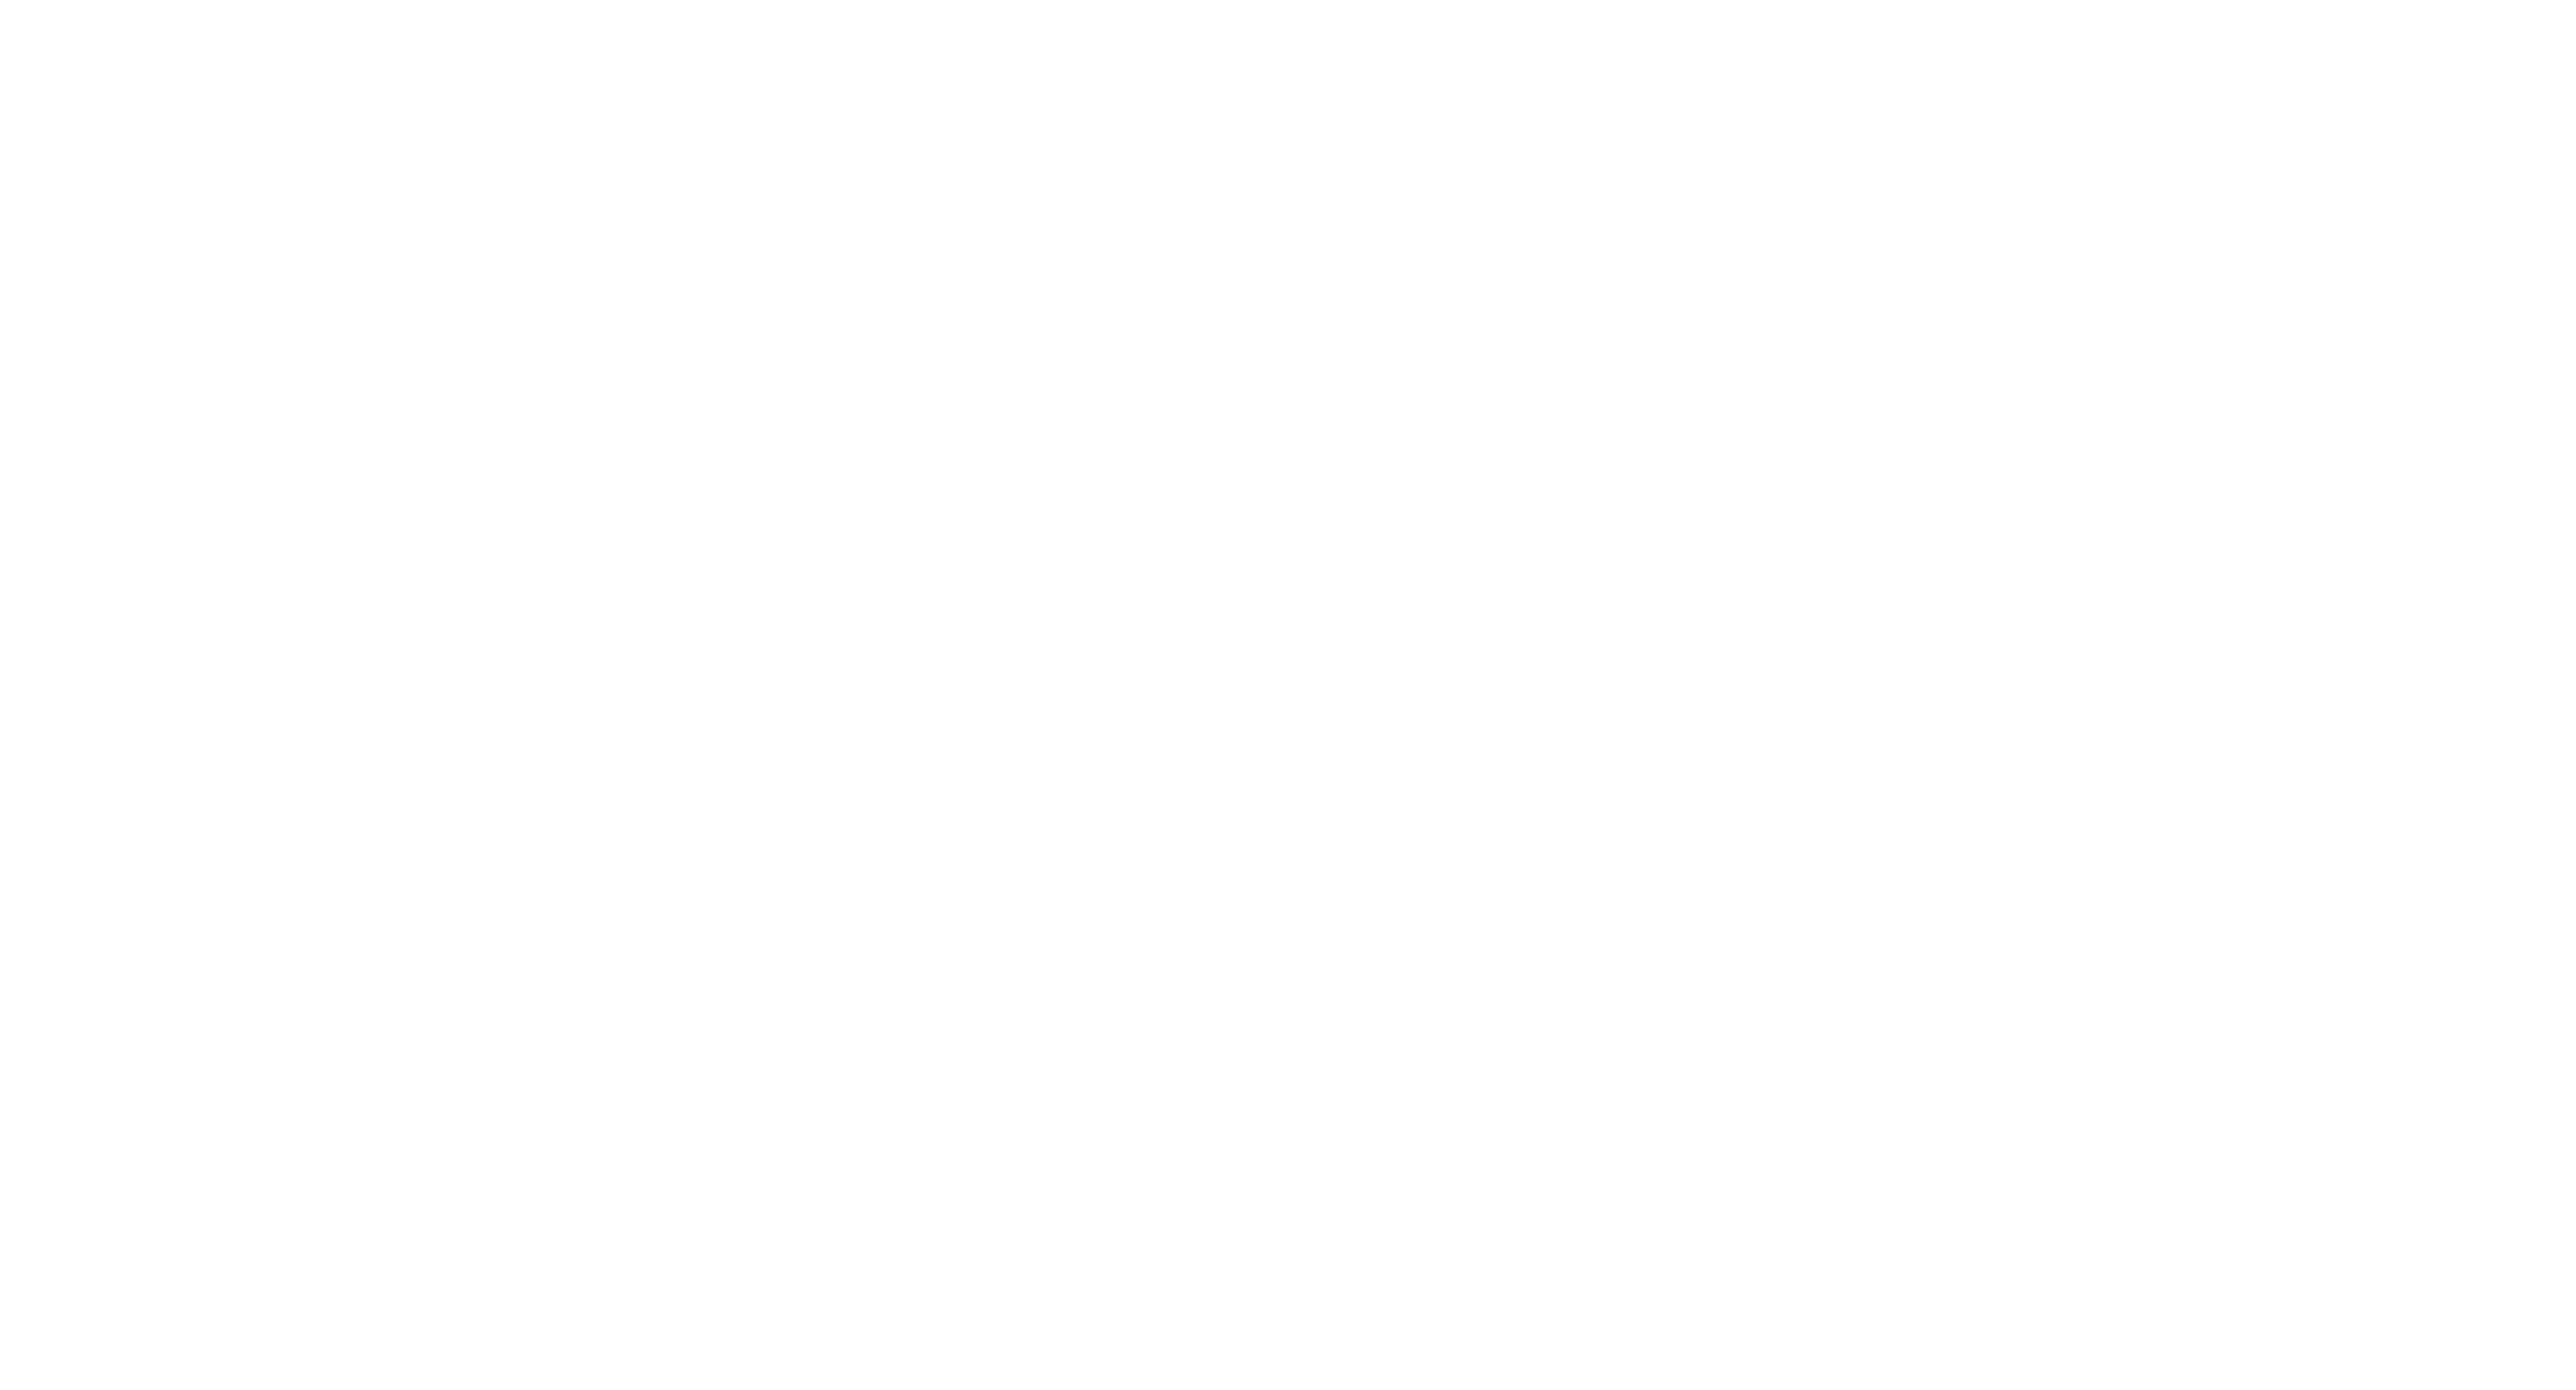 West Midlands Liberal Democrats